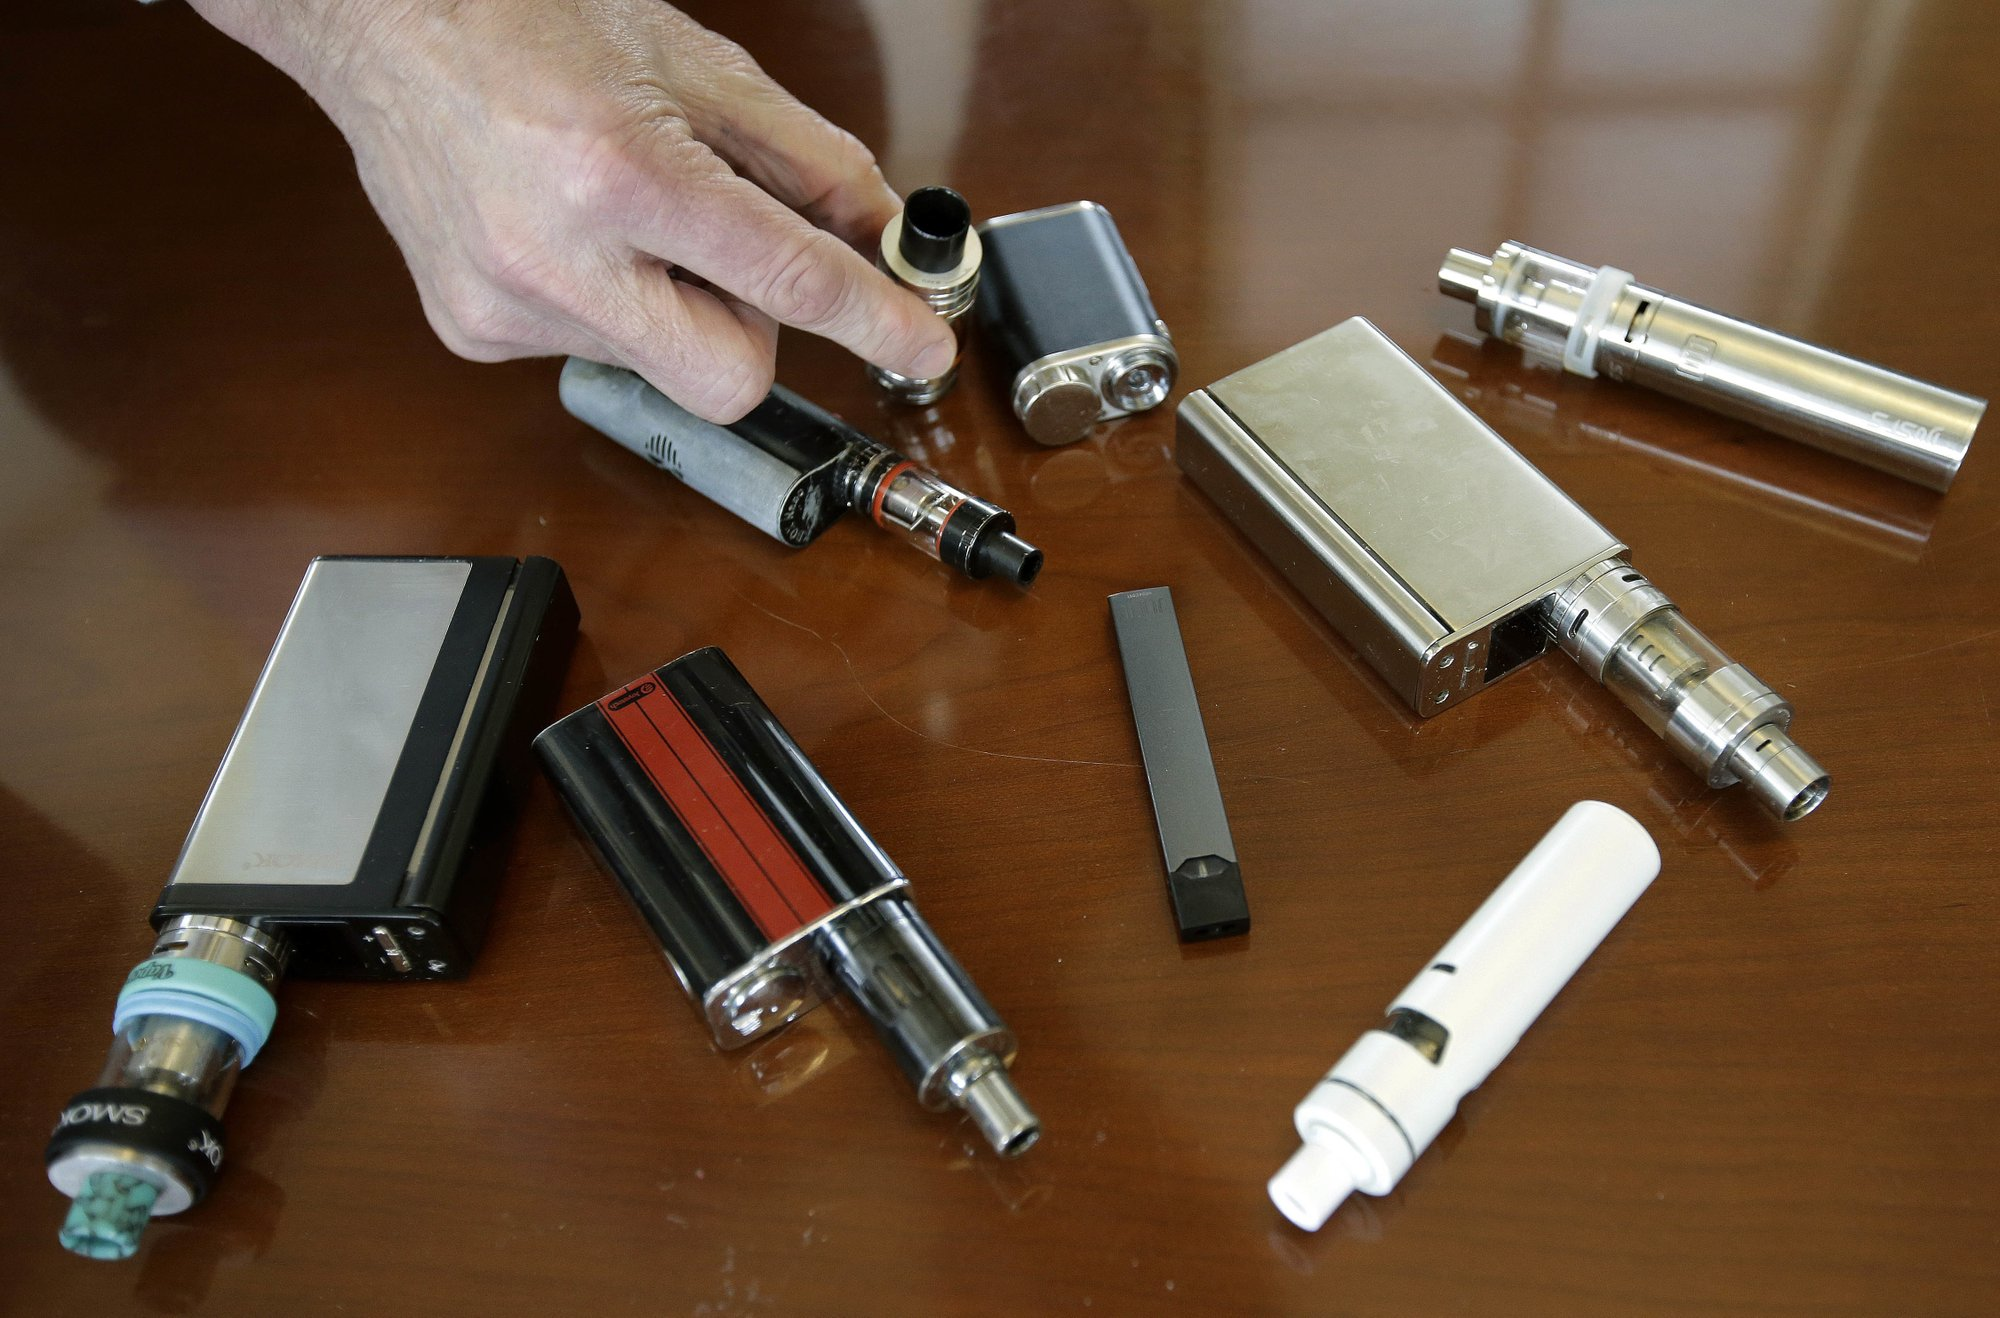 Cuomo administration plans to ban flavored e-cigarettes